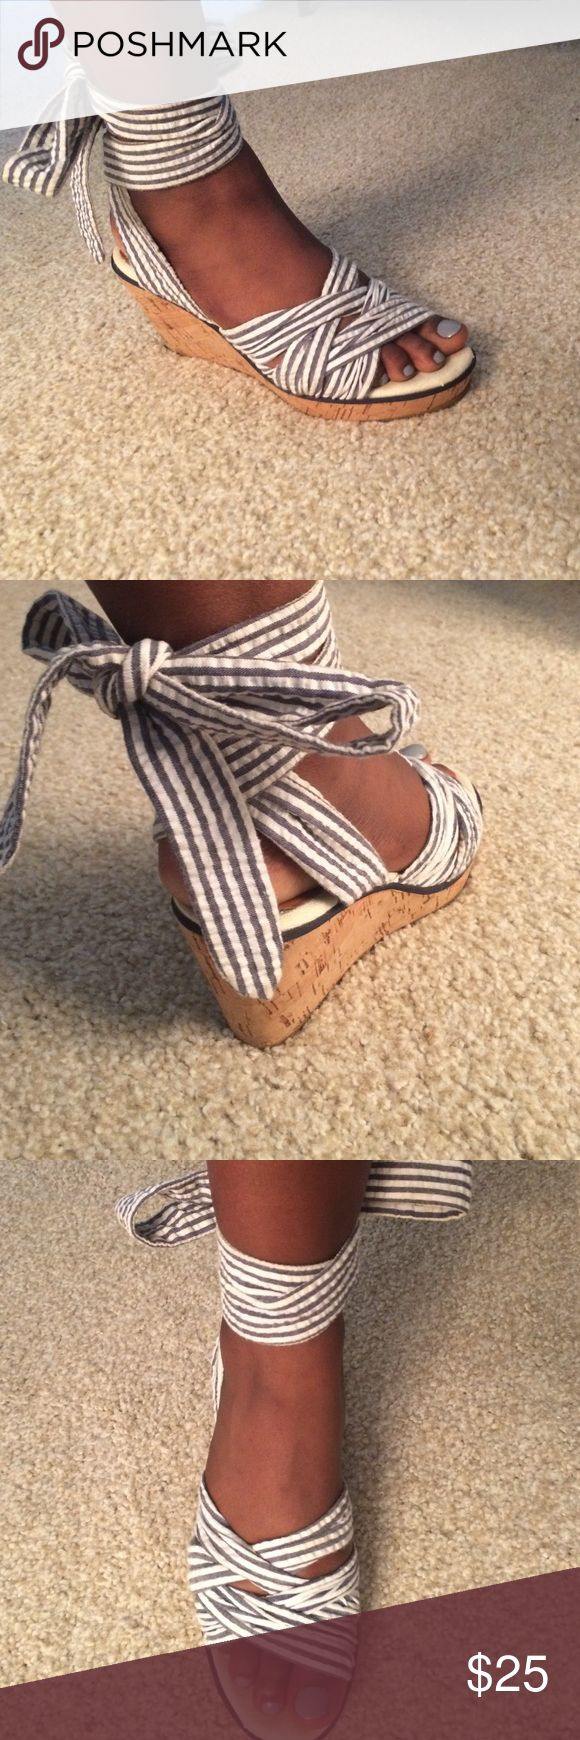 🎉CLEARANCE🎉 Sperry  ankle tie sandals 6.5/7 ADORABLE 💕 worn once Sperry Top-Sider Shoes Sandals